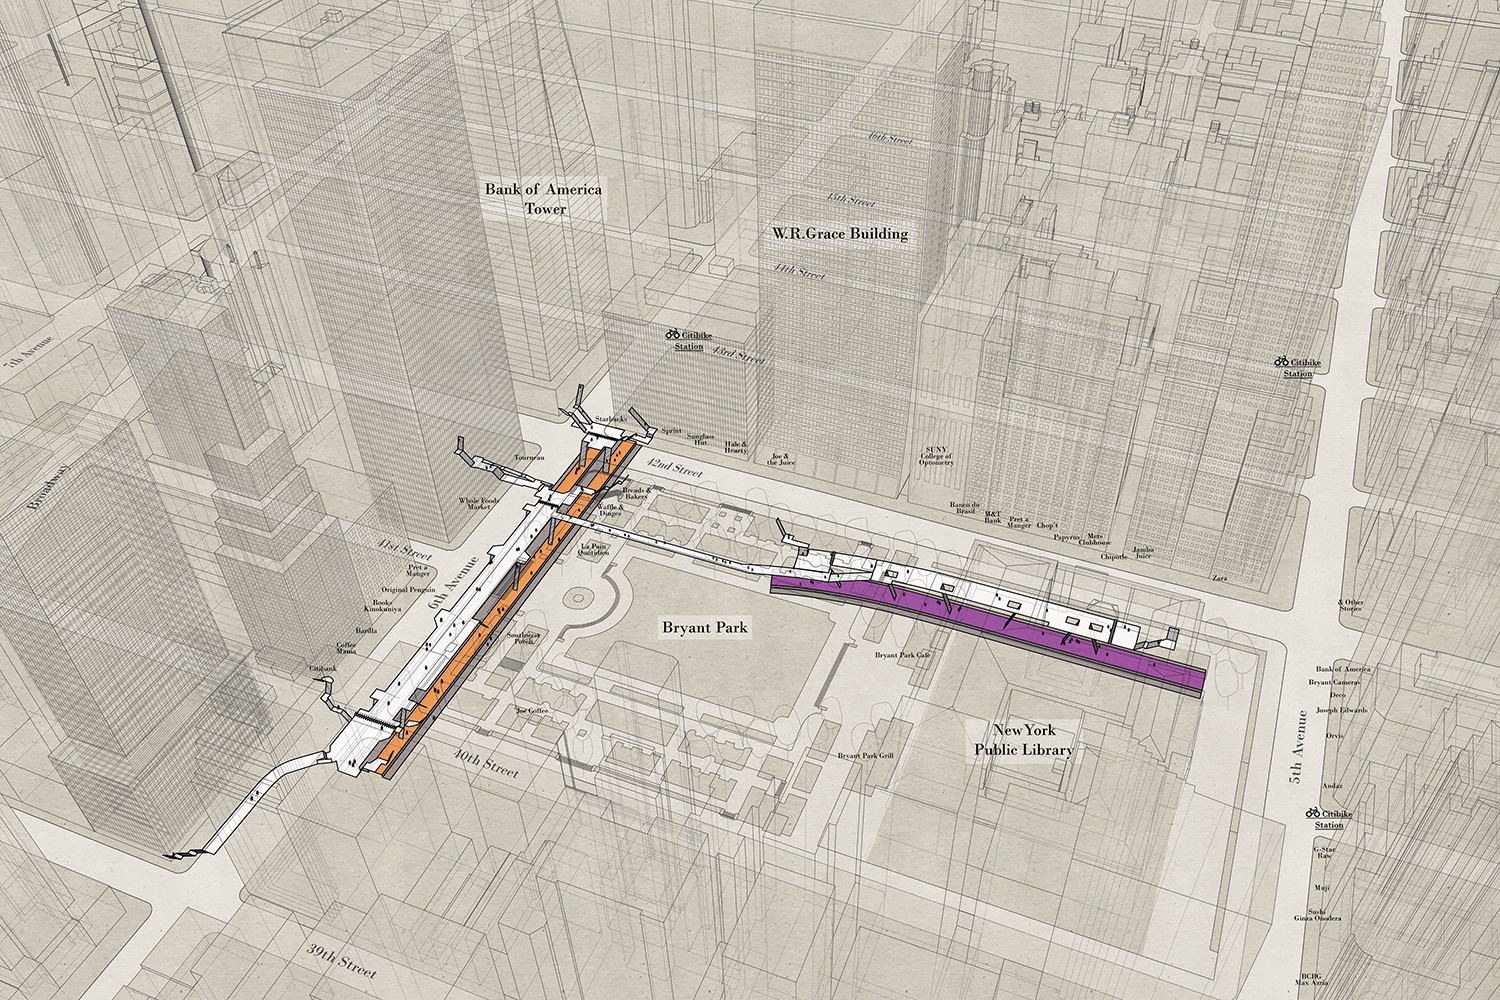 an aerial architectural map that shows New York train stations at 42nd Street Bryant Park